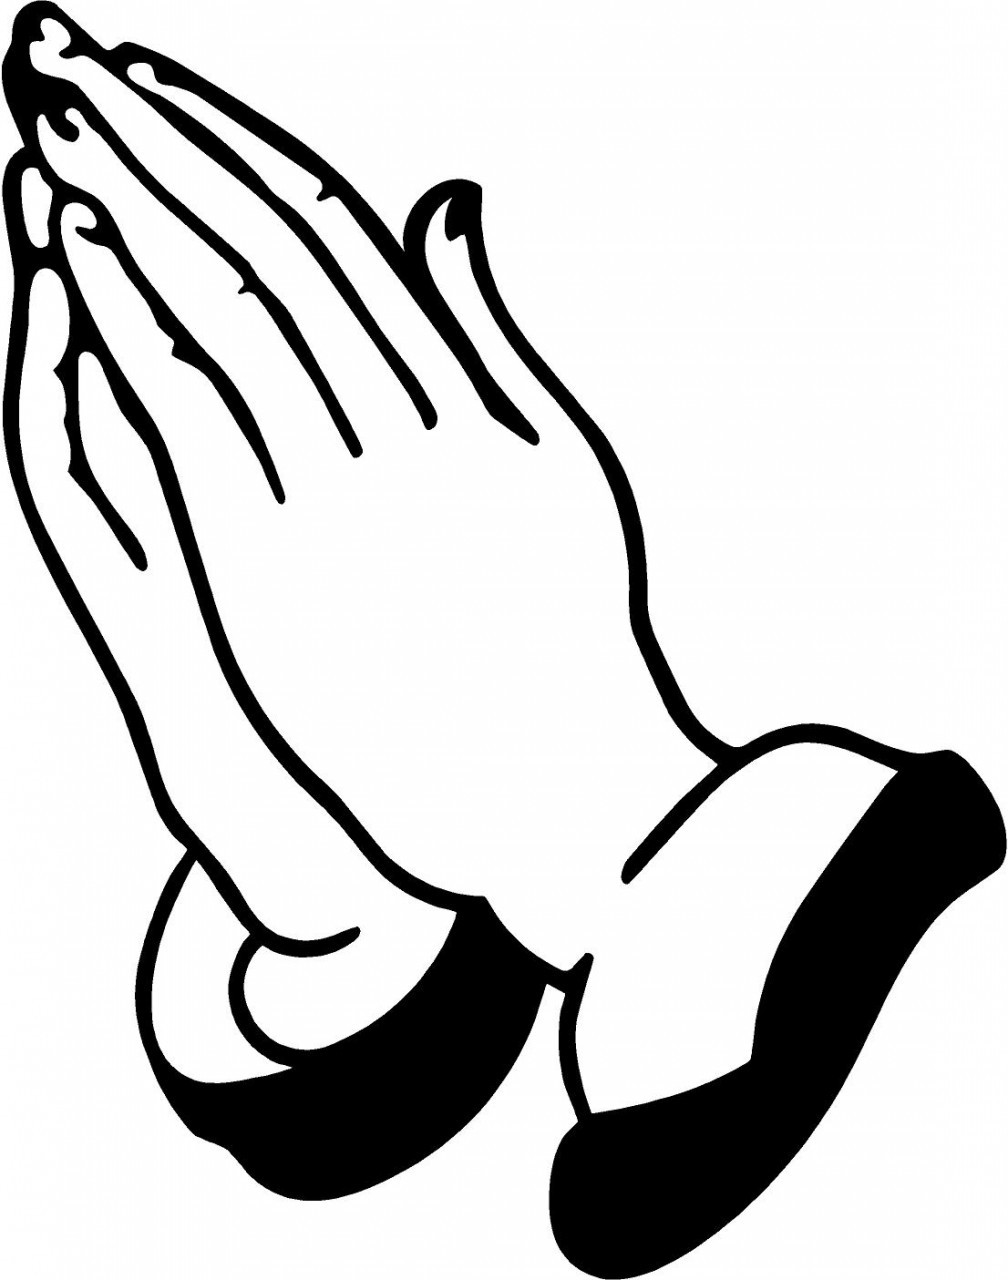 Prayer Hands Clipart | Clipart library - Free Clipart Images - Namaskar Hand  PNG - Praying Hands PNG HD Images